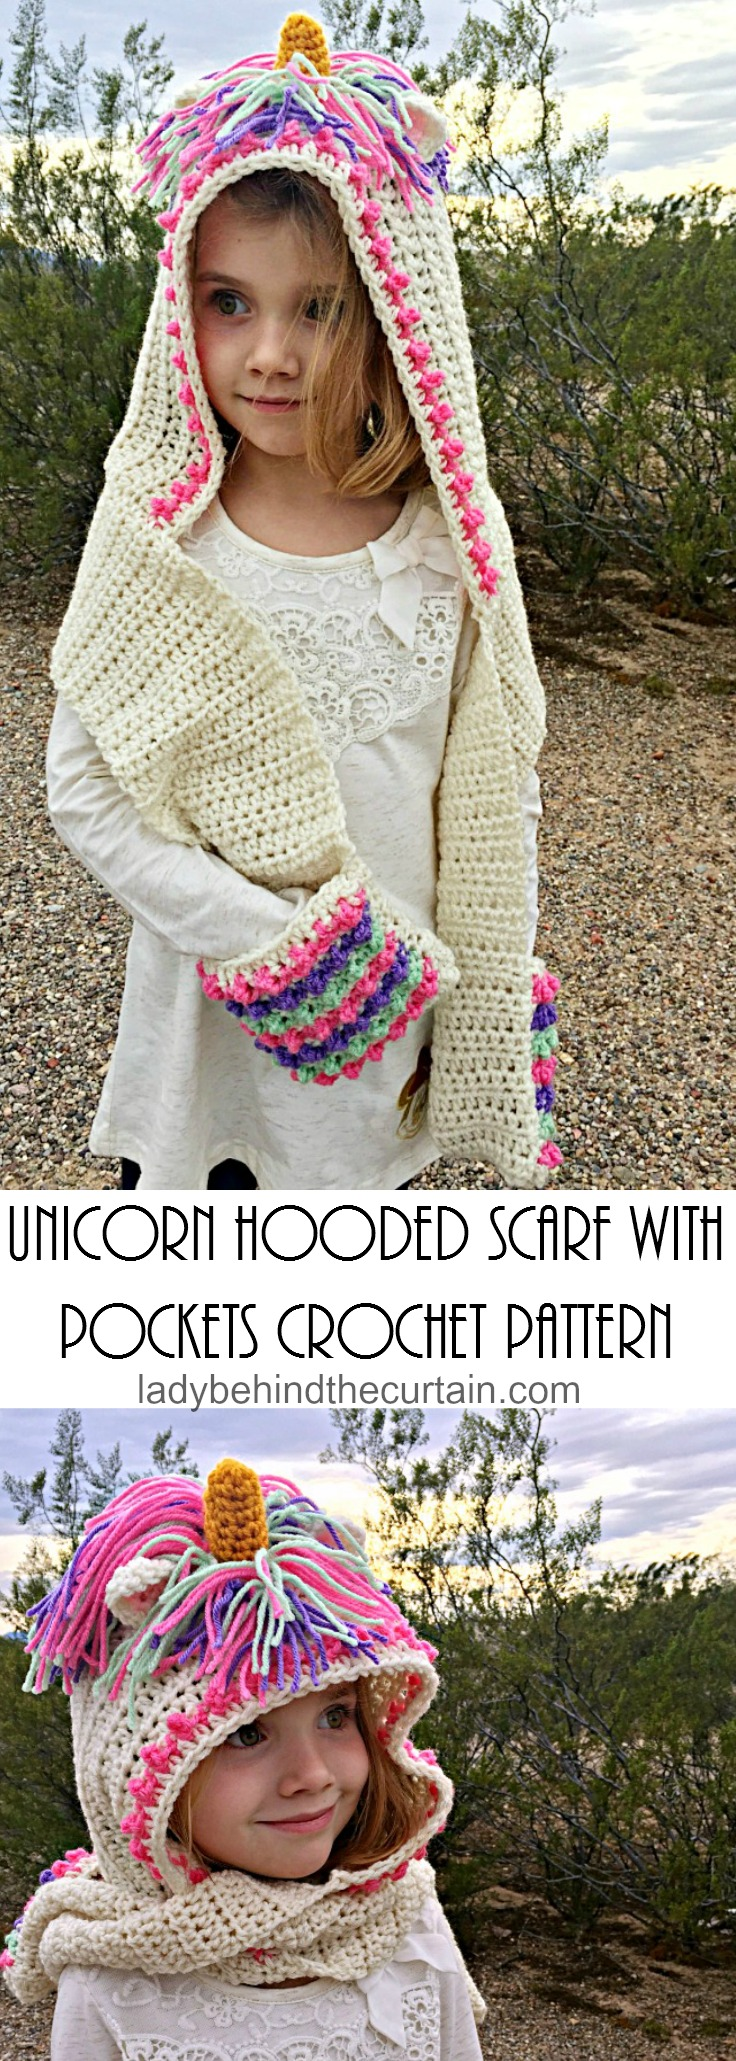 Hooded Scarf Pattern Cool Ideas